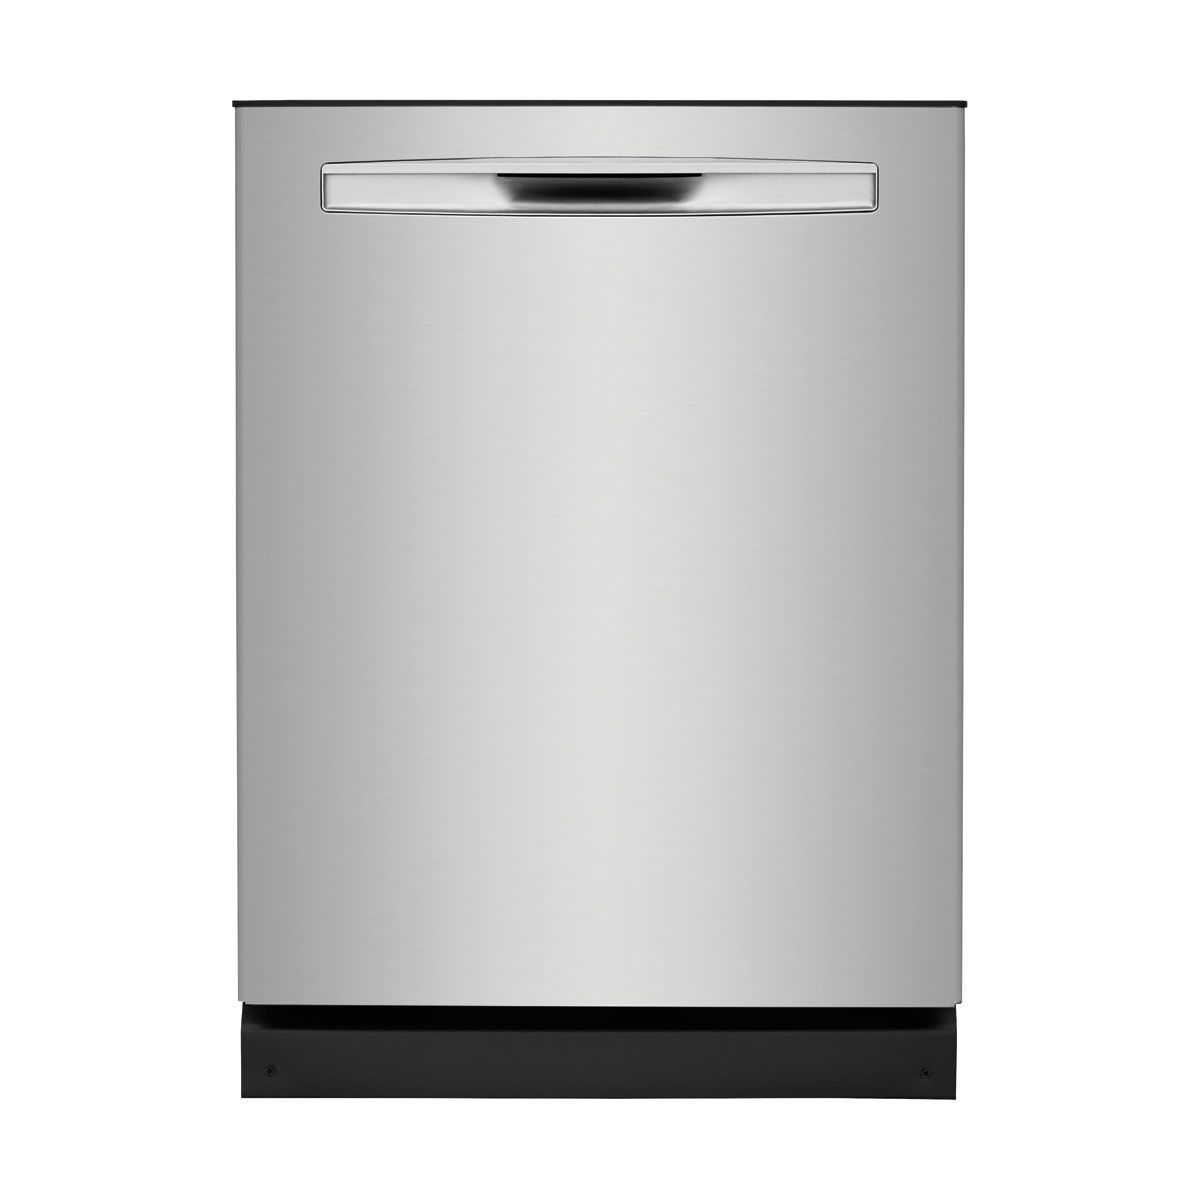 Picture of FRIGIDAIRE GALLERY DISHWASHER